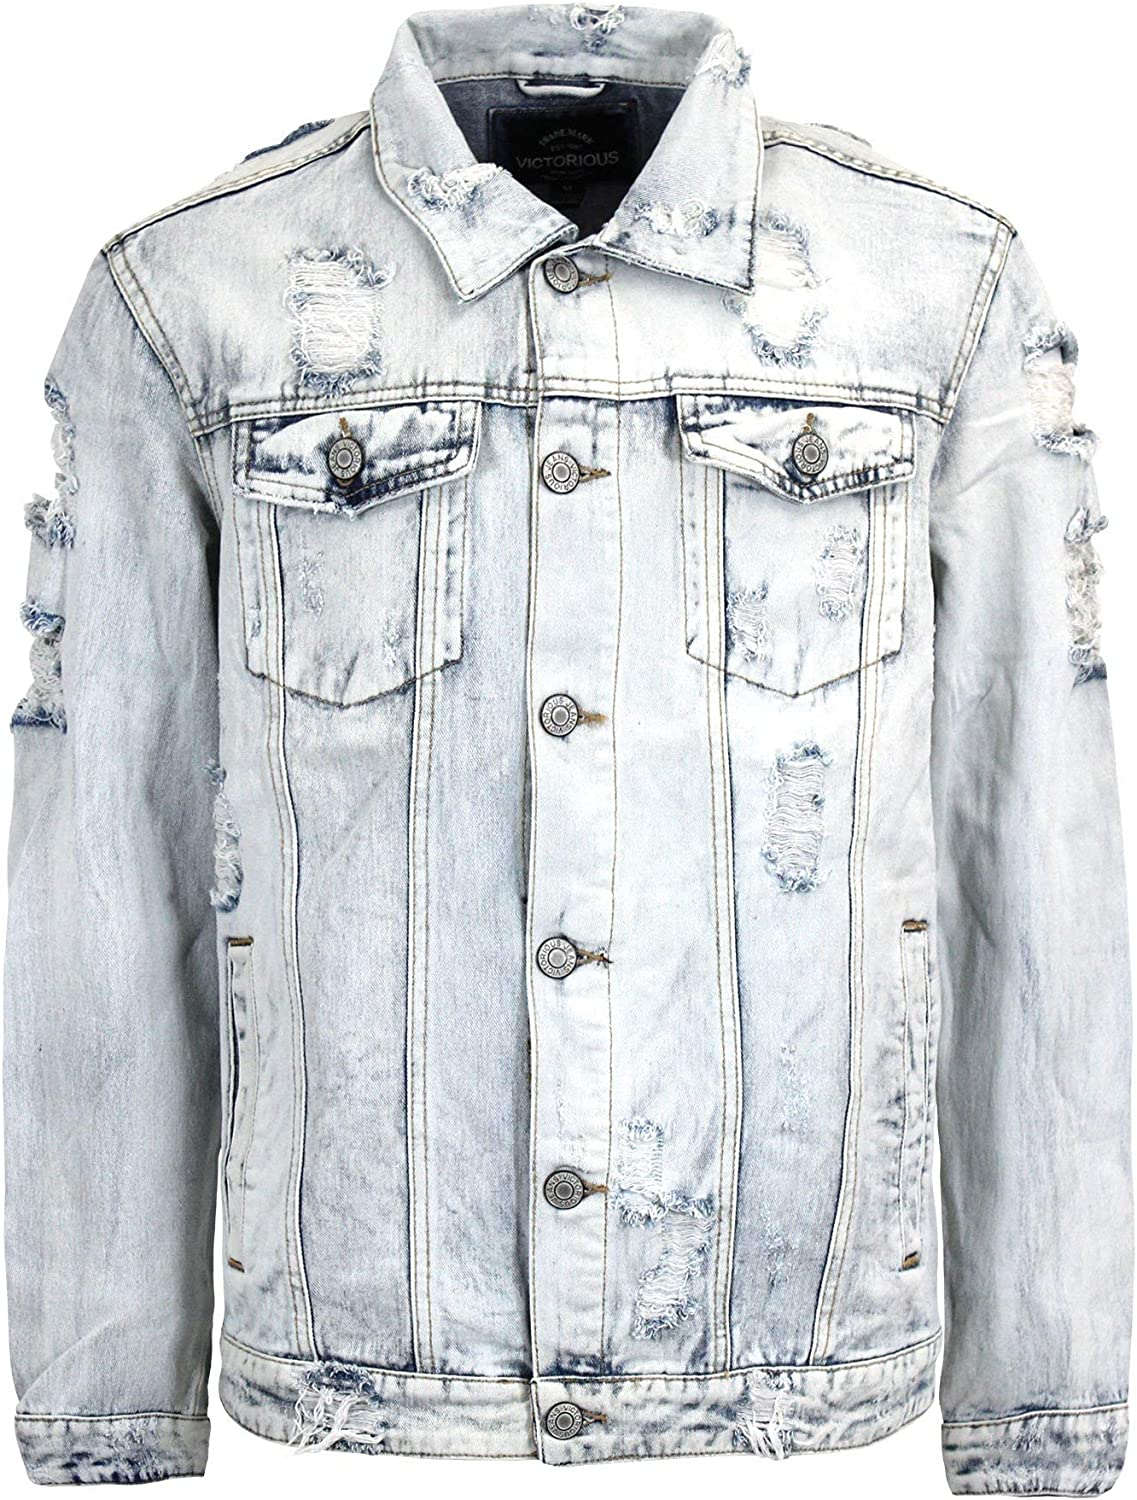 Victorious Challenge the lowest price of Japan ☆ Men's Distressed Jacket Denim Save money